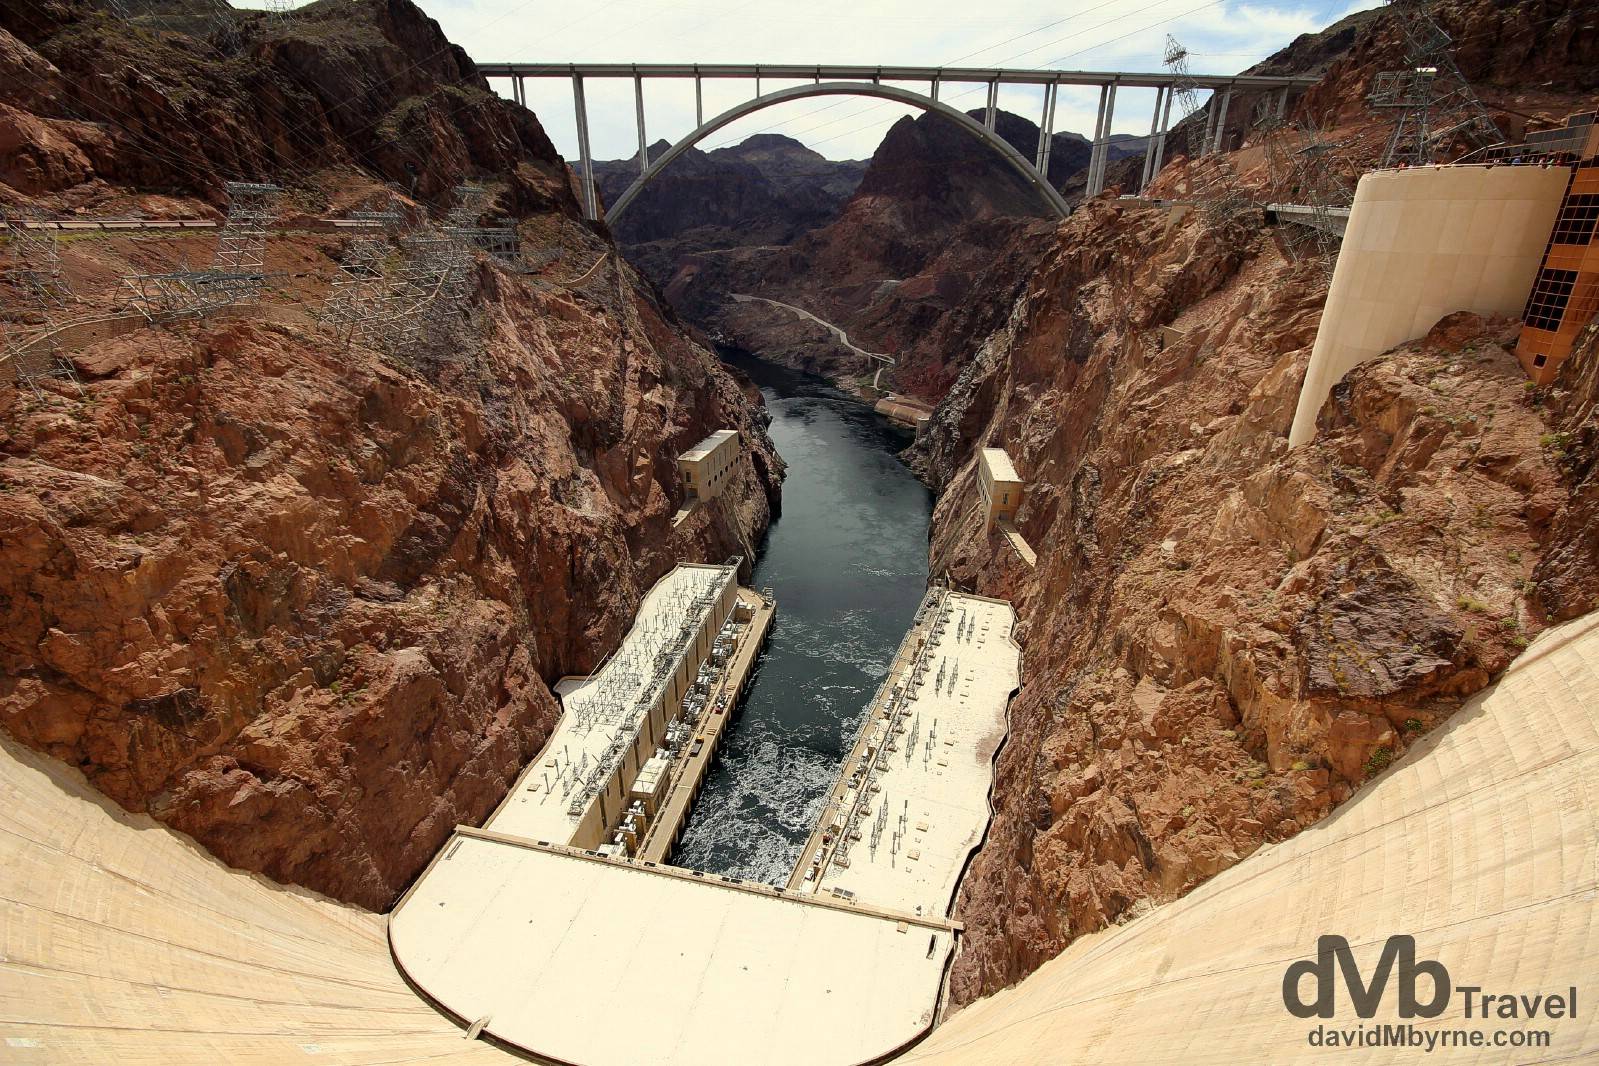 The new Mike O'Callaghan-Pat Tillman Memorial Bridge spanning the Black Canyon as seen from the apex of the Hoover Dam on the Nevada (right) & Arizona (left) border, USA. April 6th 2013.